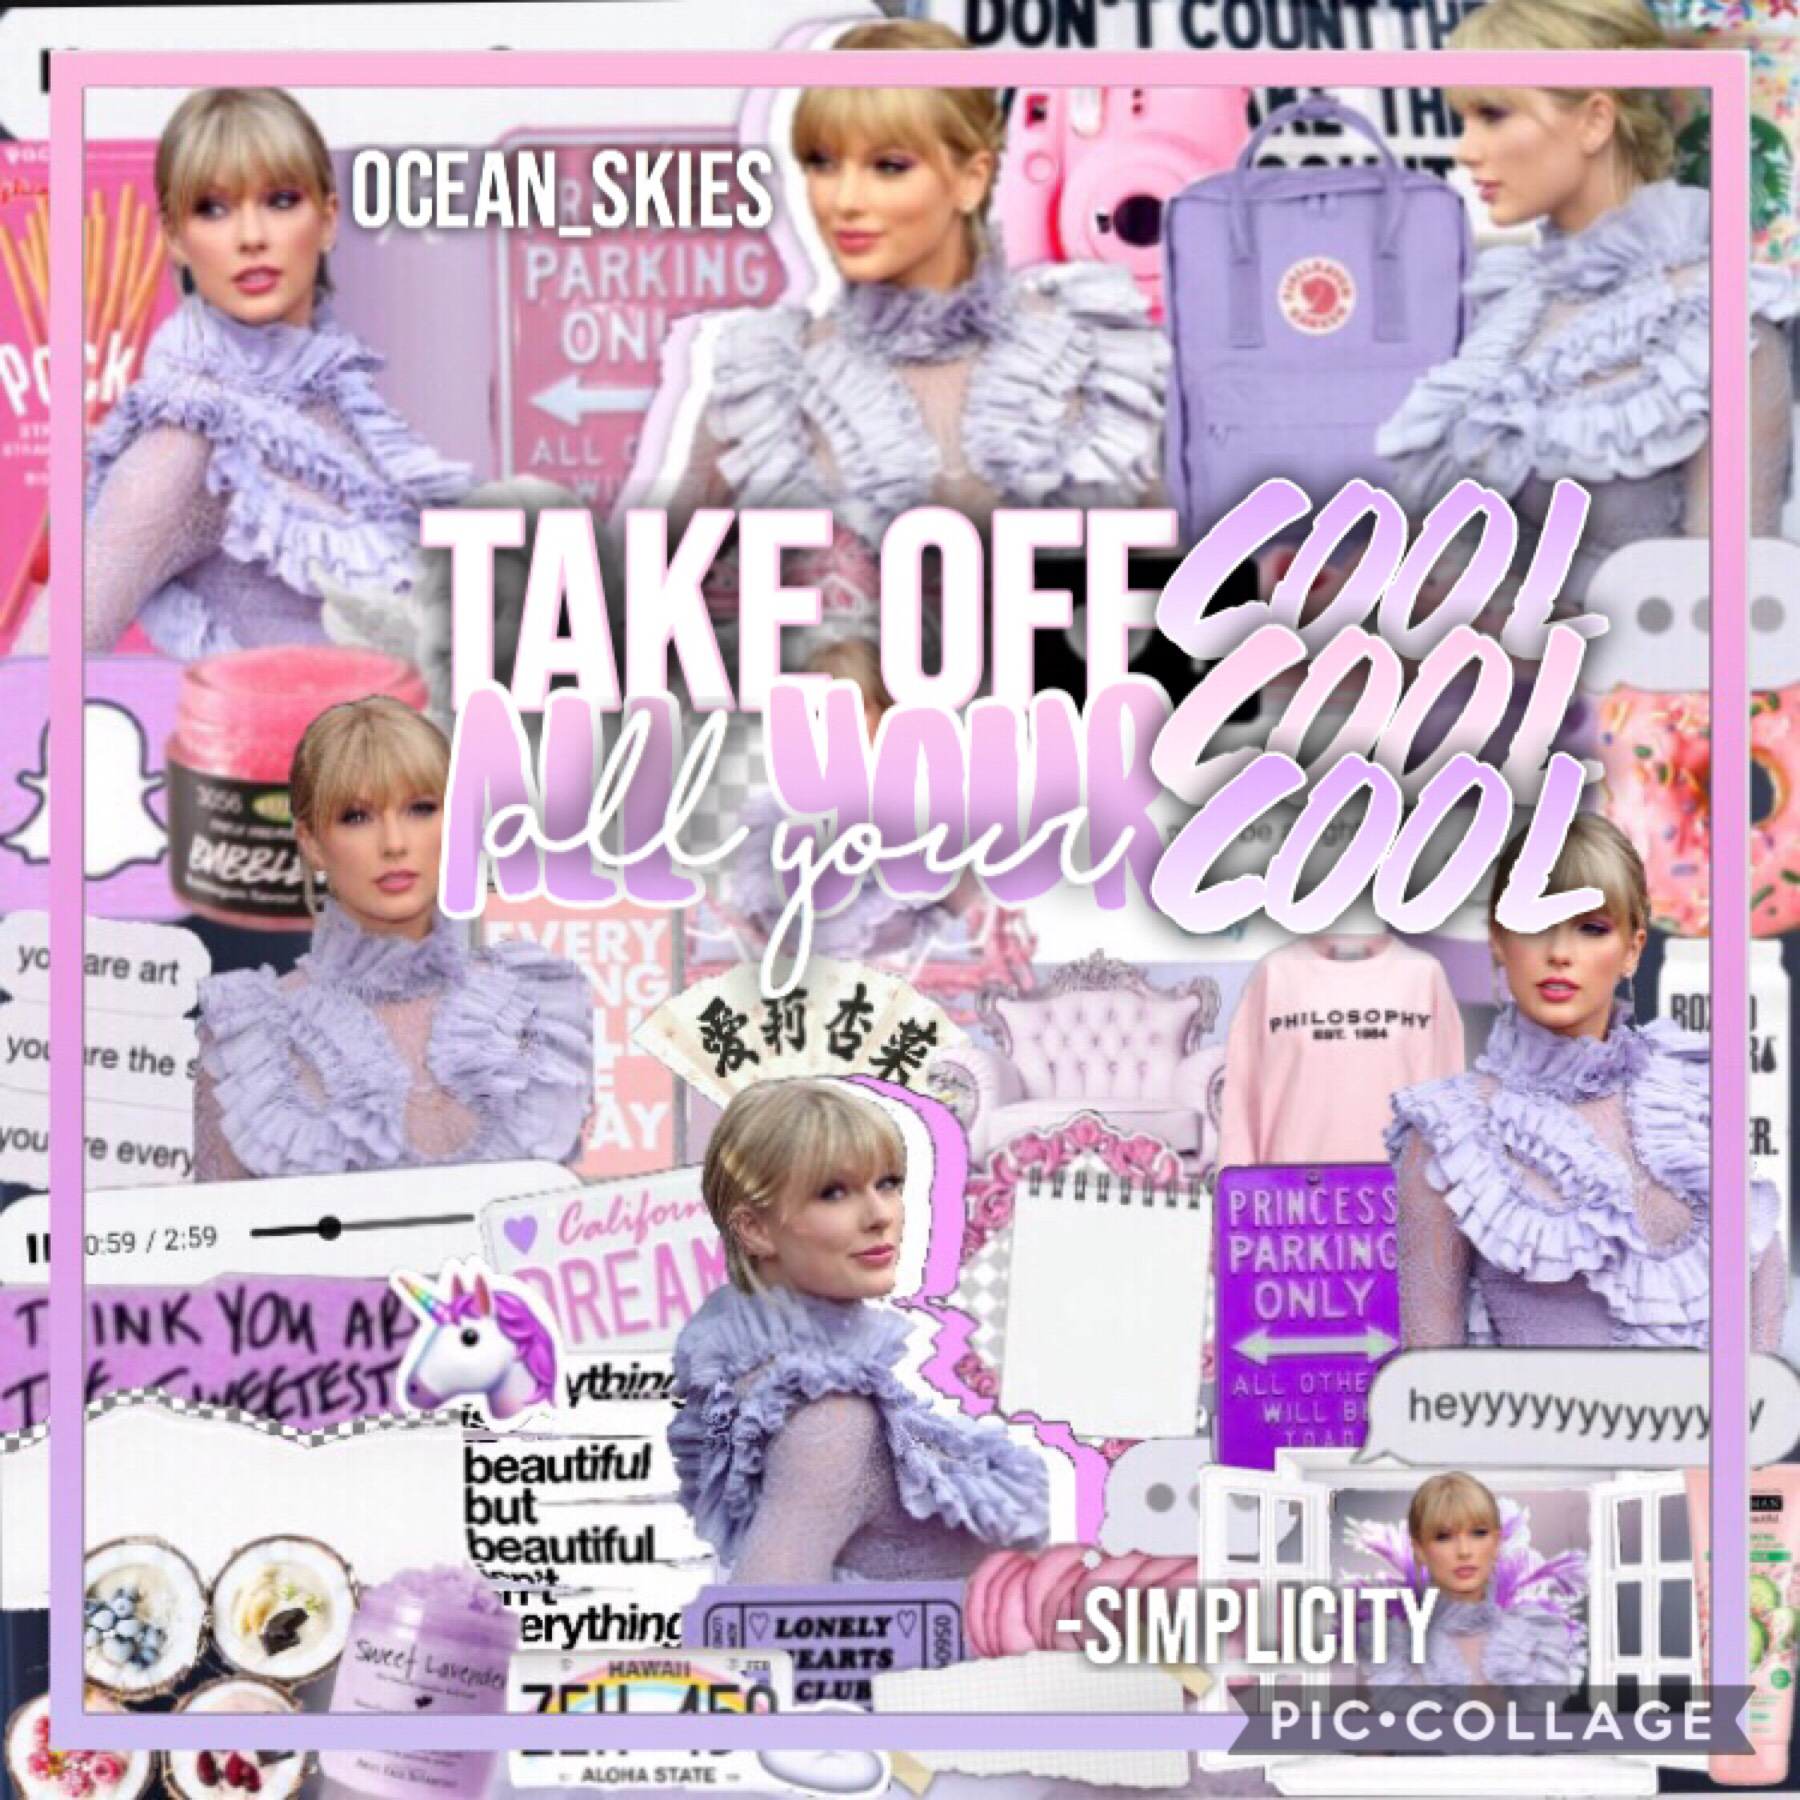 Hey guys!! Here's the collab with ocean_skies!! School starts tomorrow😫😫 I did bottom again and ocean_skies did the top! Hope you enjoy❤️